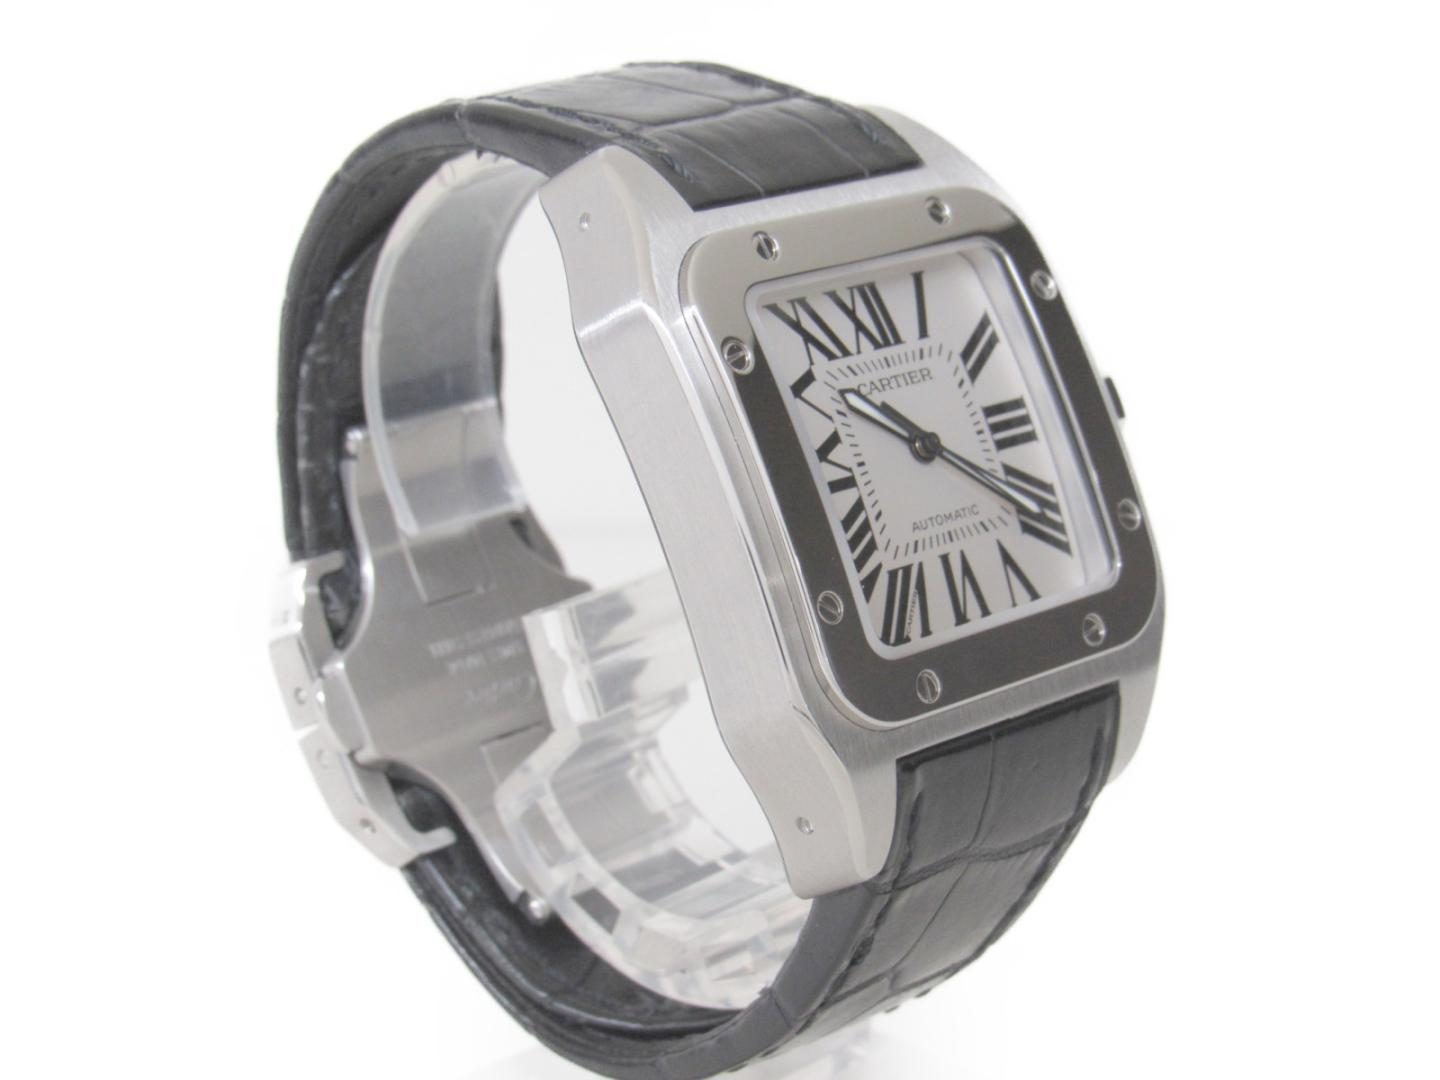 e4016879be2d Authentic Cartier Santos 100LM Watch W 20077 X 8 Automatic Stainless Steel x  Leather Belt